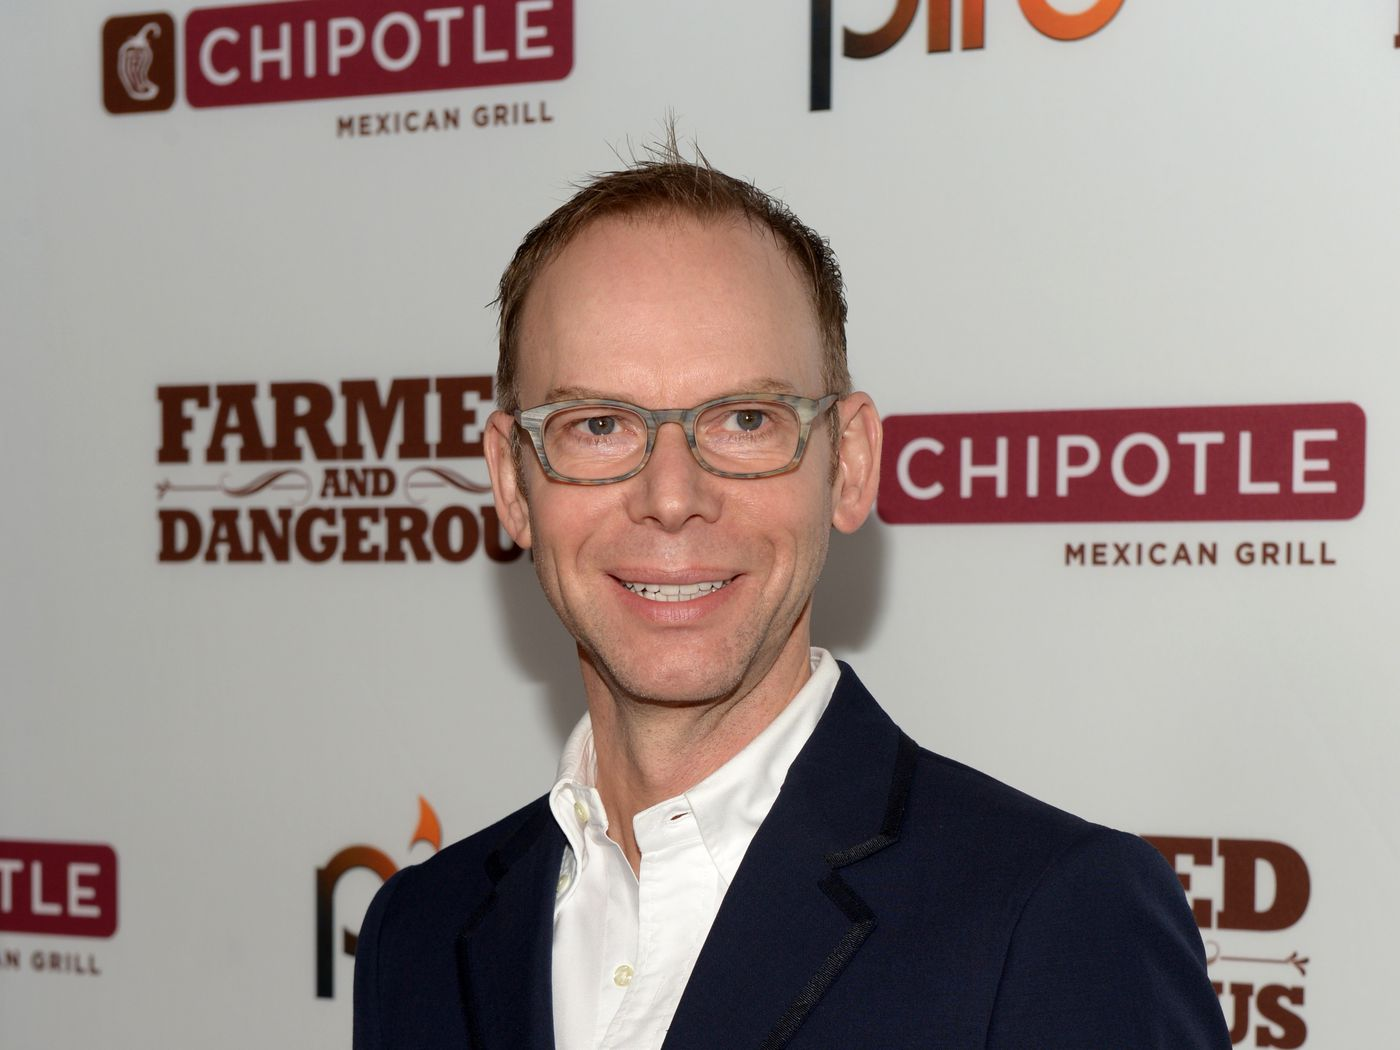 Chipotles Co CEOs Face Backlash Over Their Enormous Paychecks   Eater 1400x1050